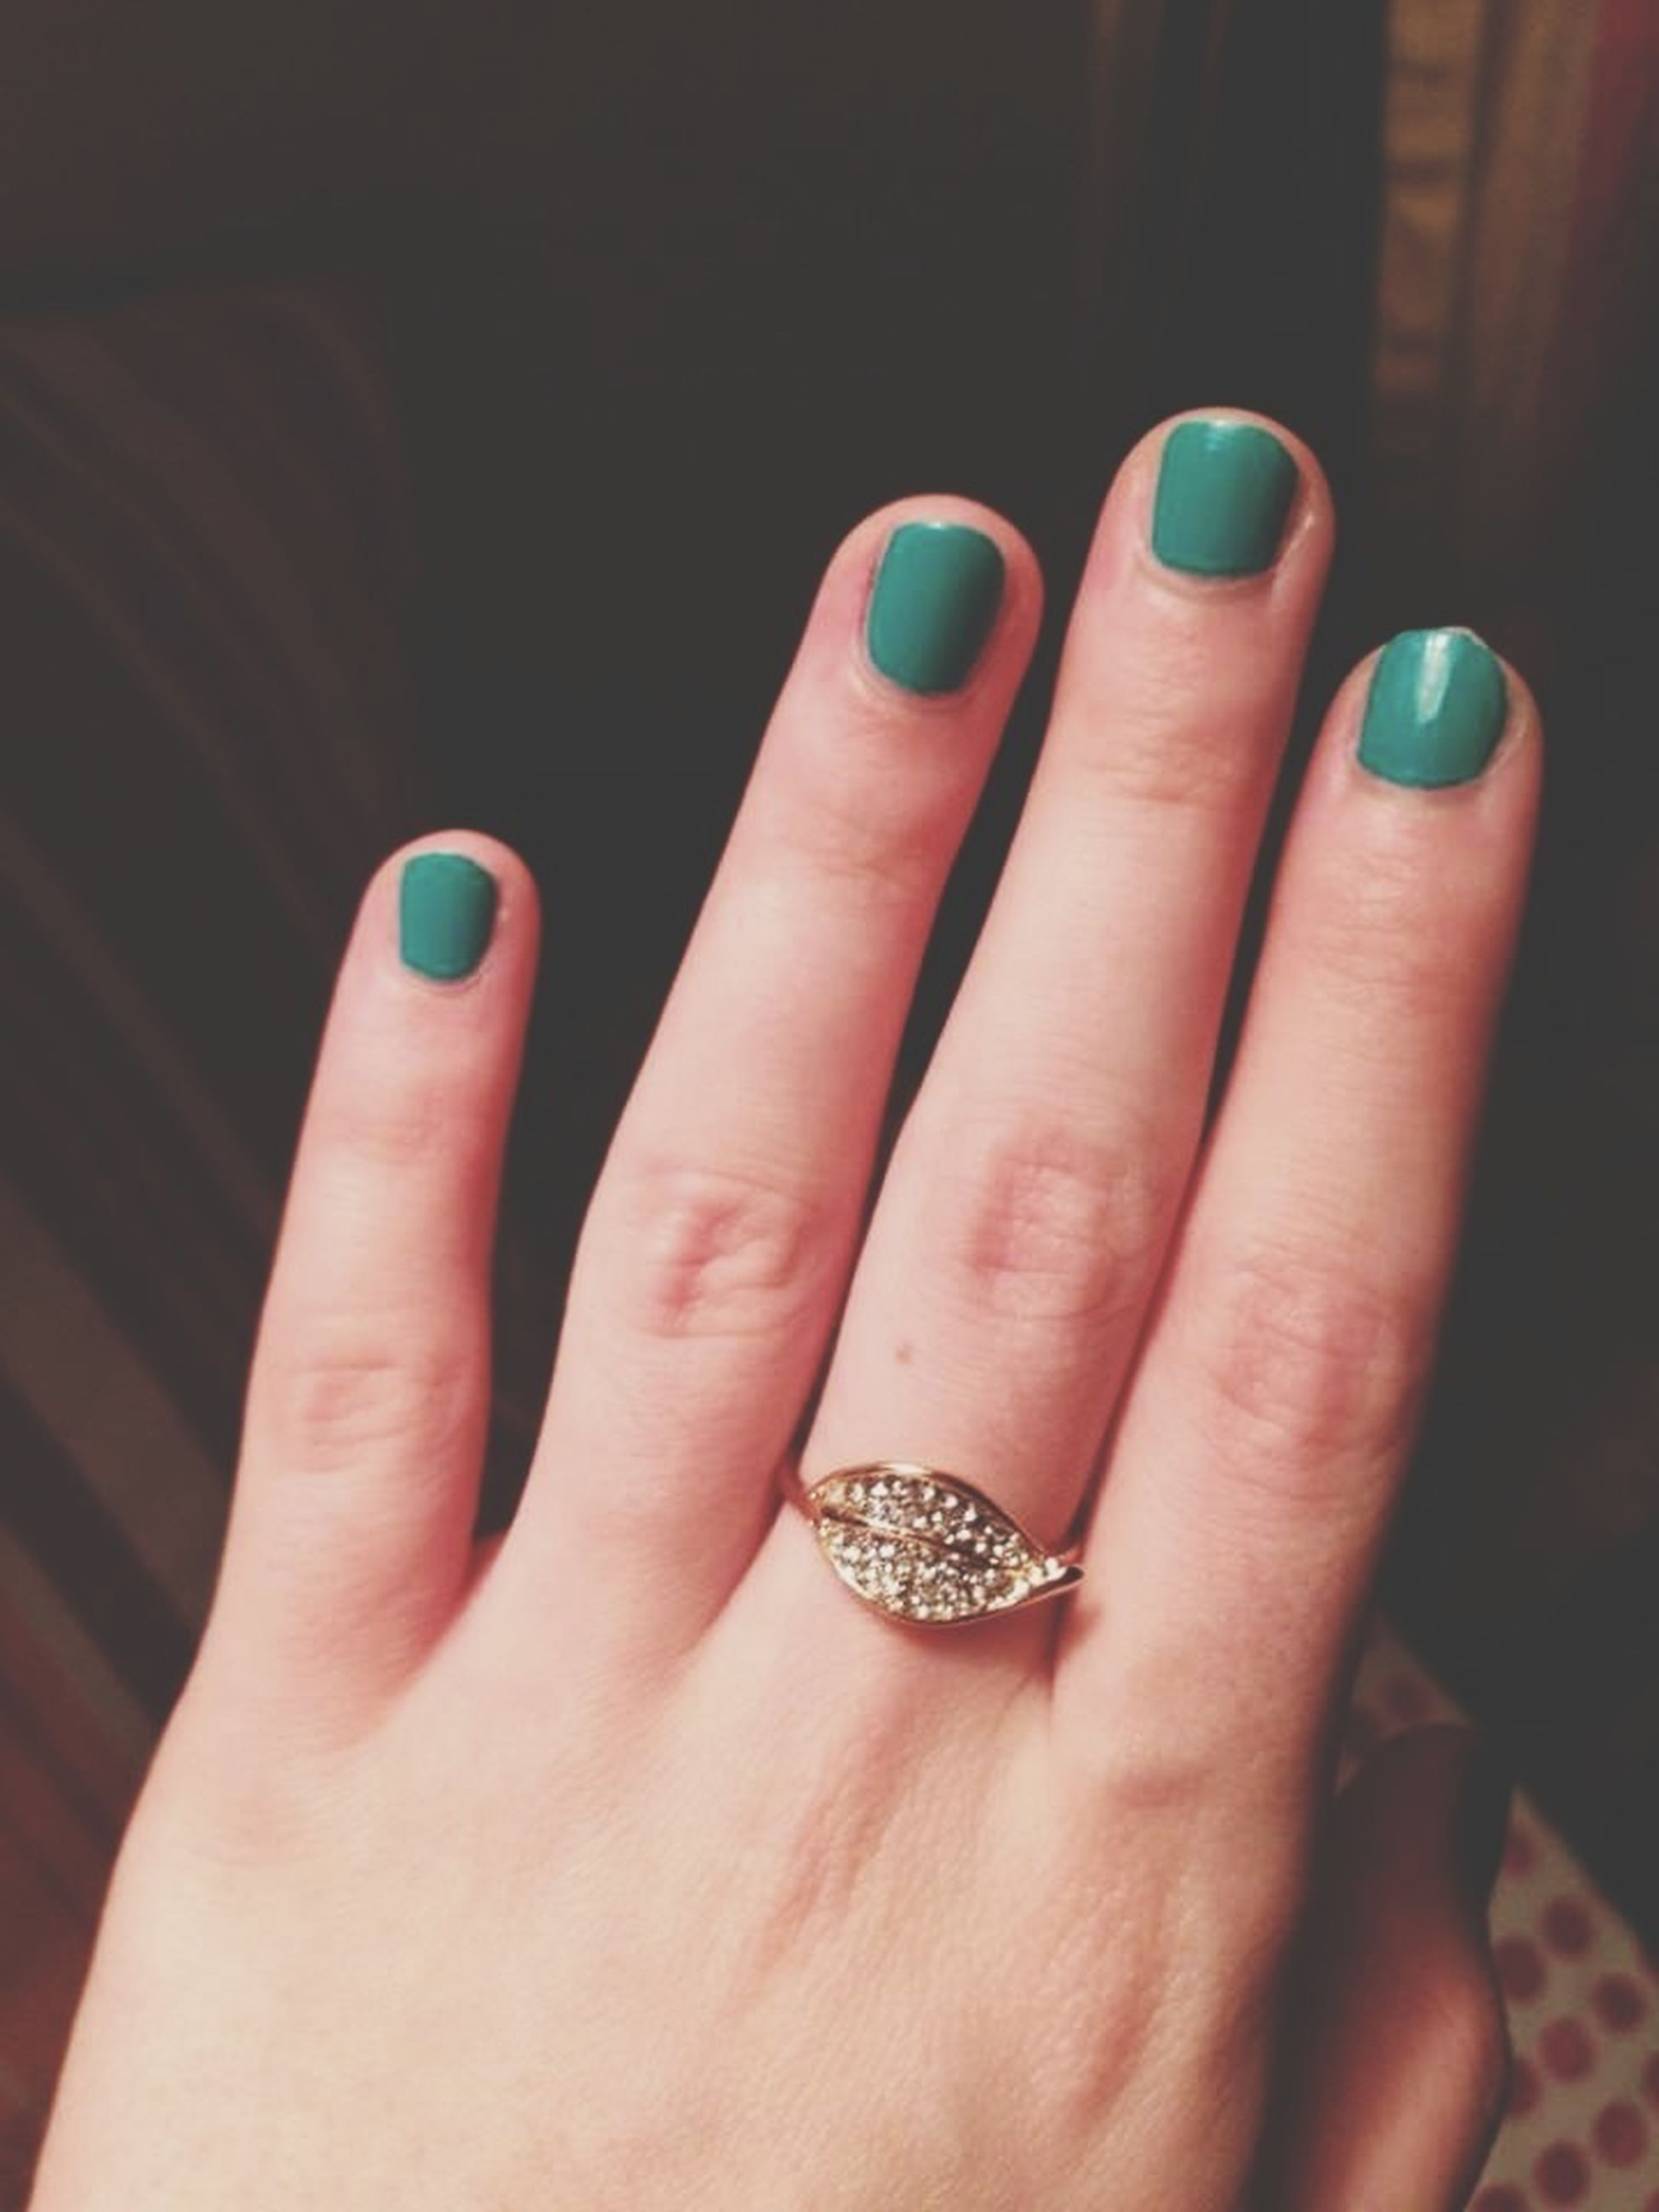 person, part of, indoors, human finger, holding, close-up, cropped, ring, unrecognizable person, jewelry, personal perspective, fashion, high angle view, nail polish, bracelet, studio shot, showing